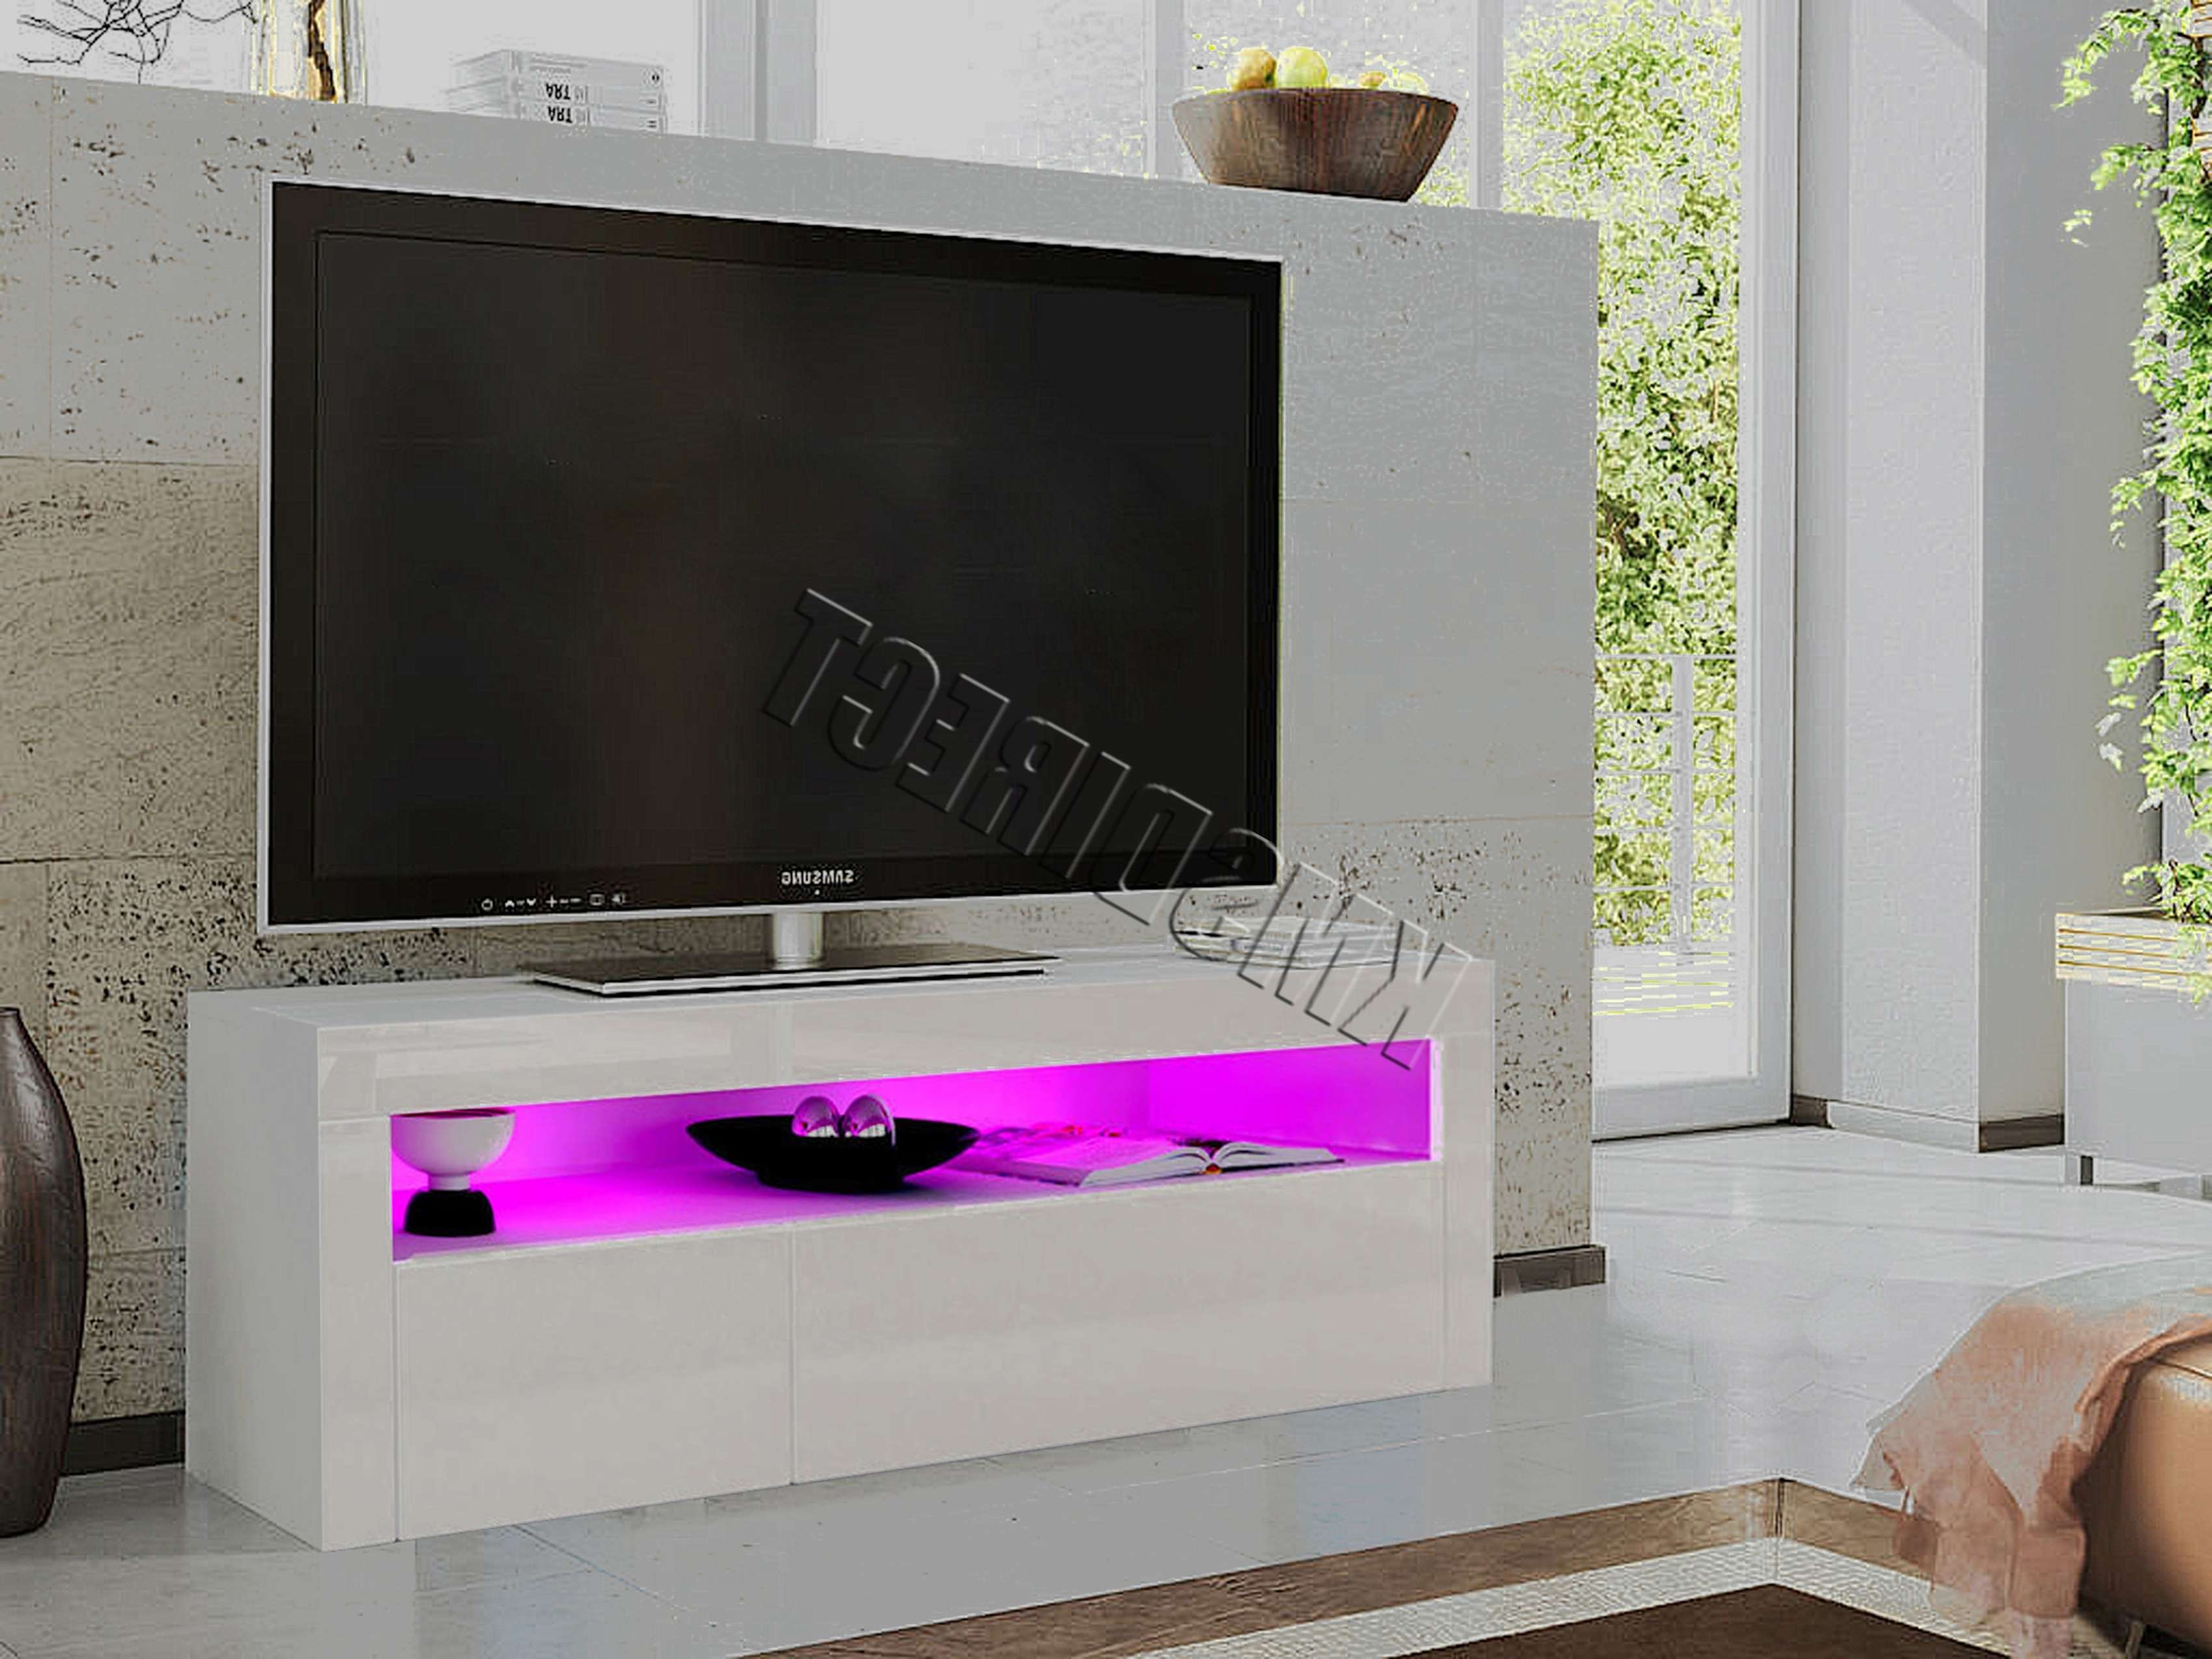 Foxhunter High Gloss Matt Tv Cabinet Unit Stand White Rgb Led Pertaining To Gloss Tv Stands (View 15 of 15)